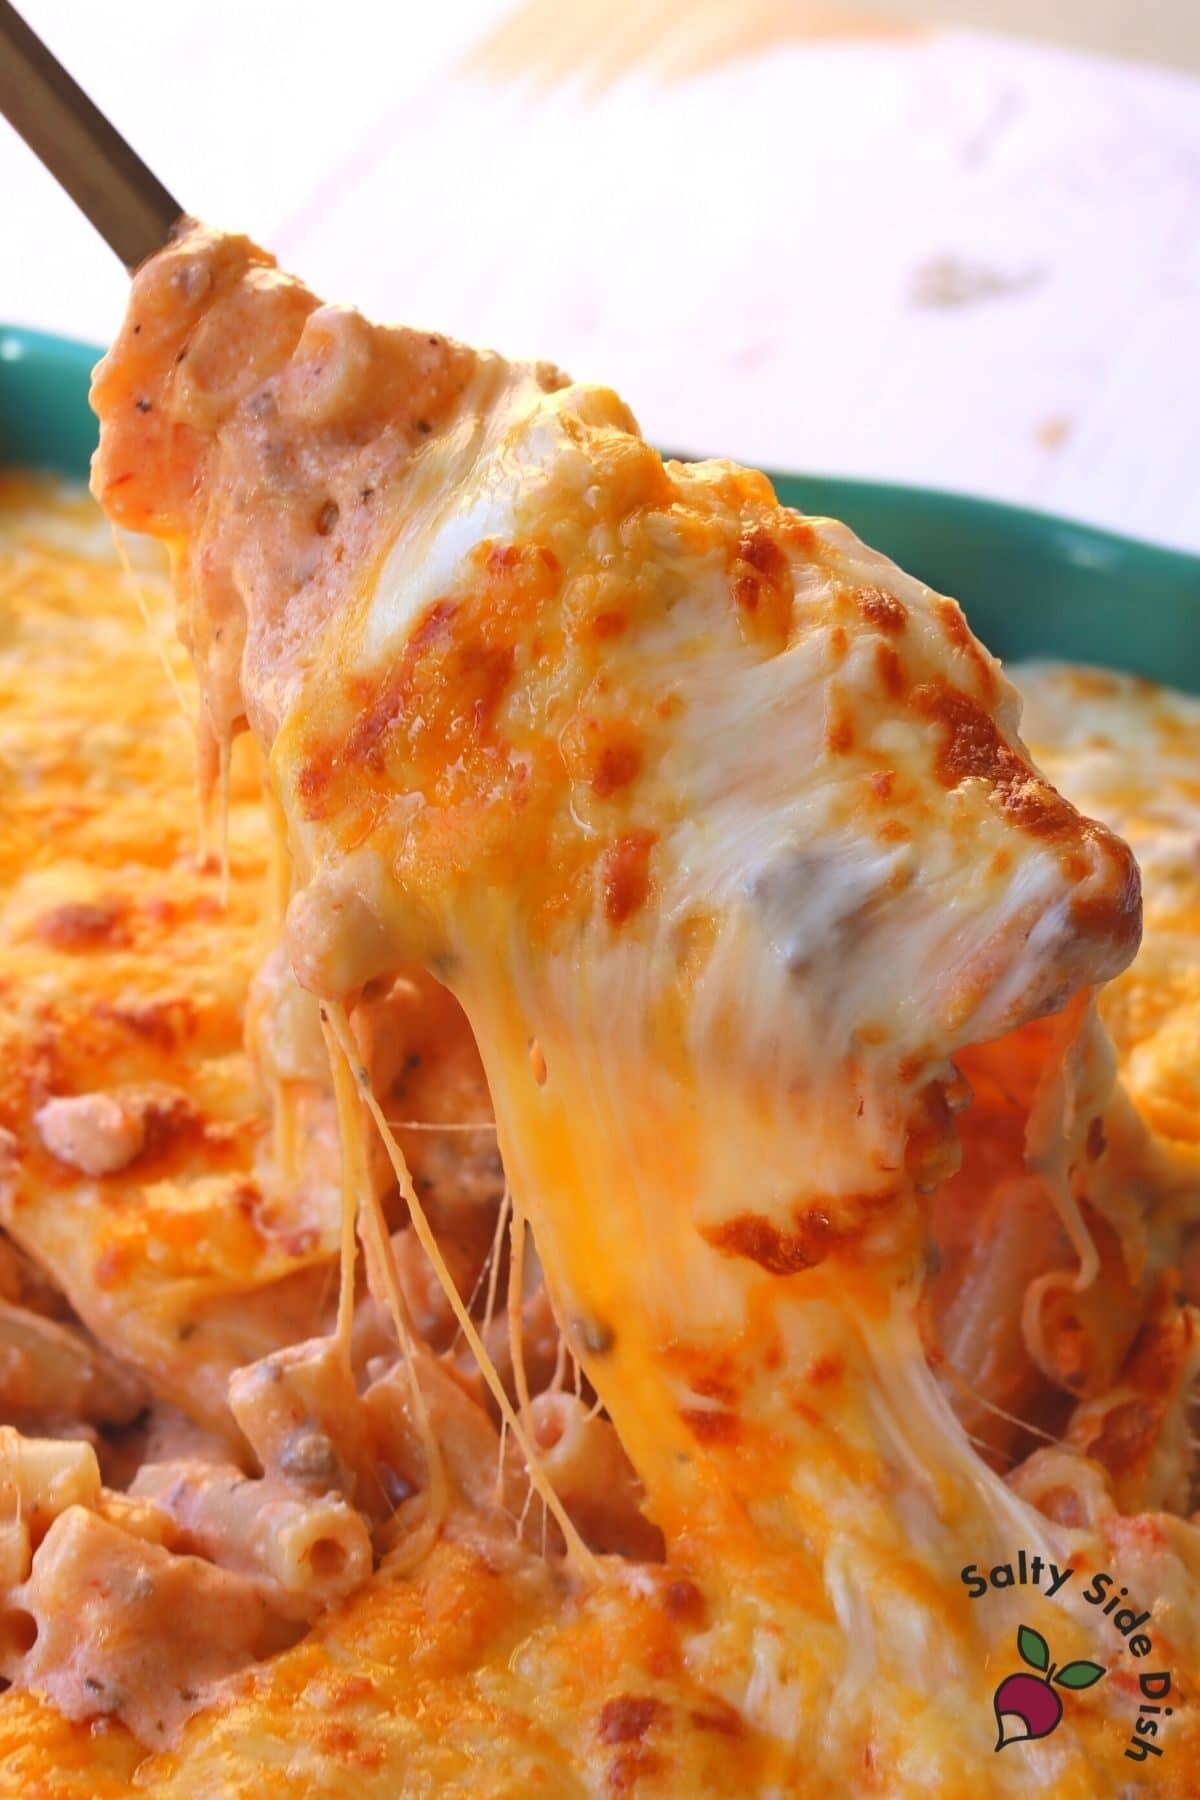 baked ziti with ricotta in a large spoon